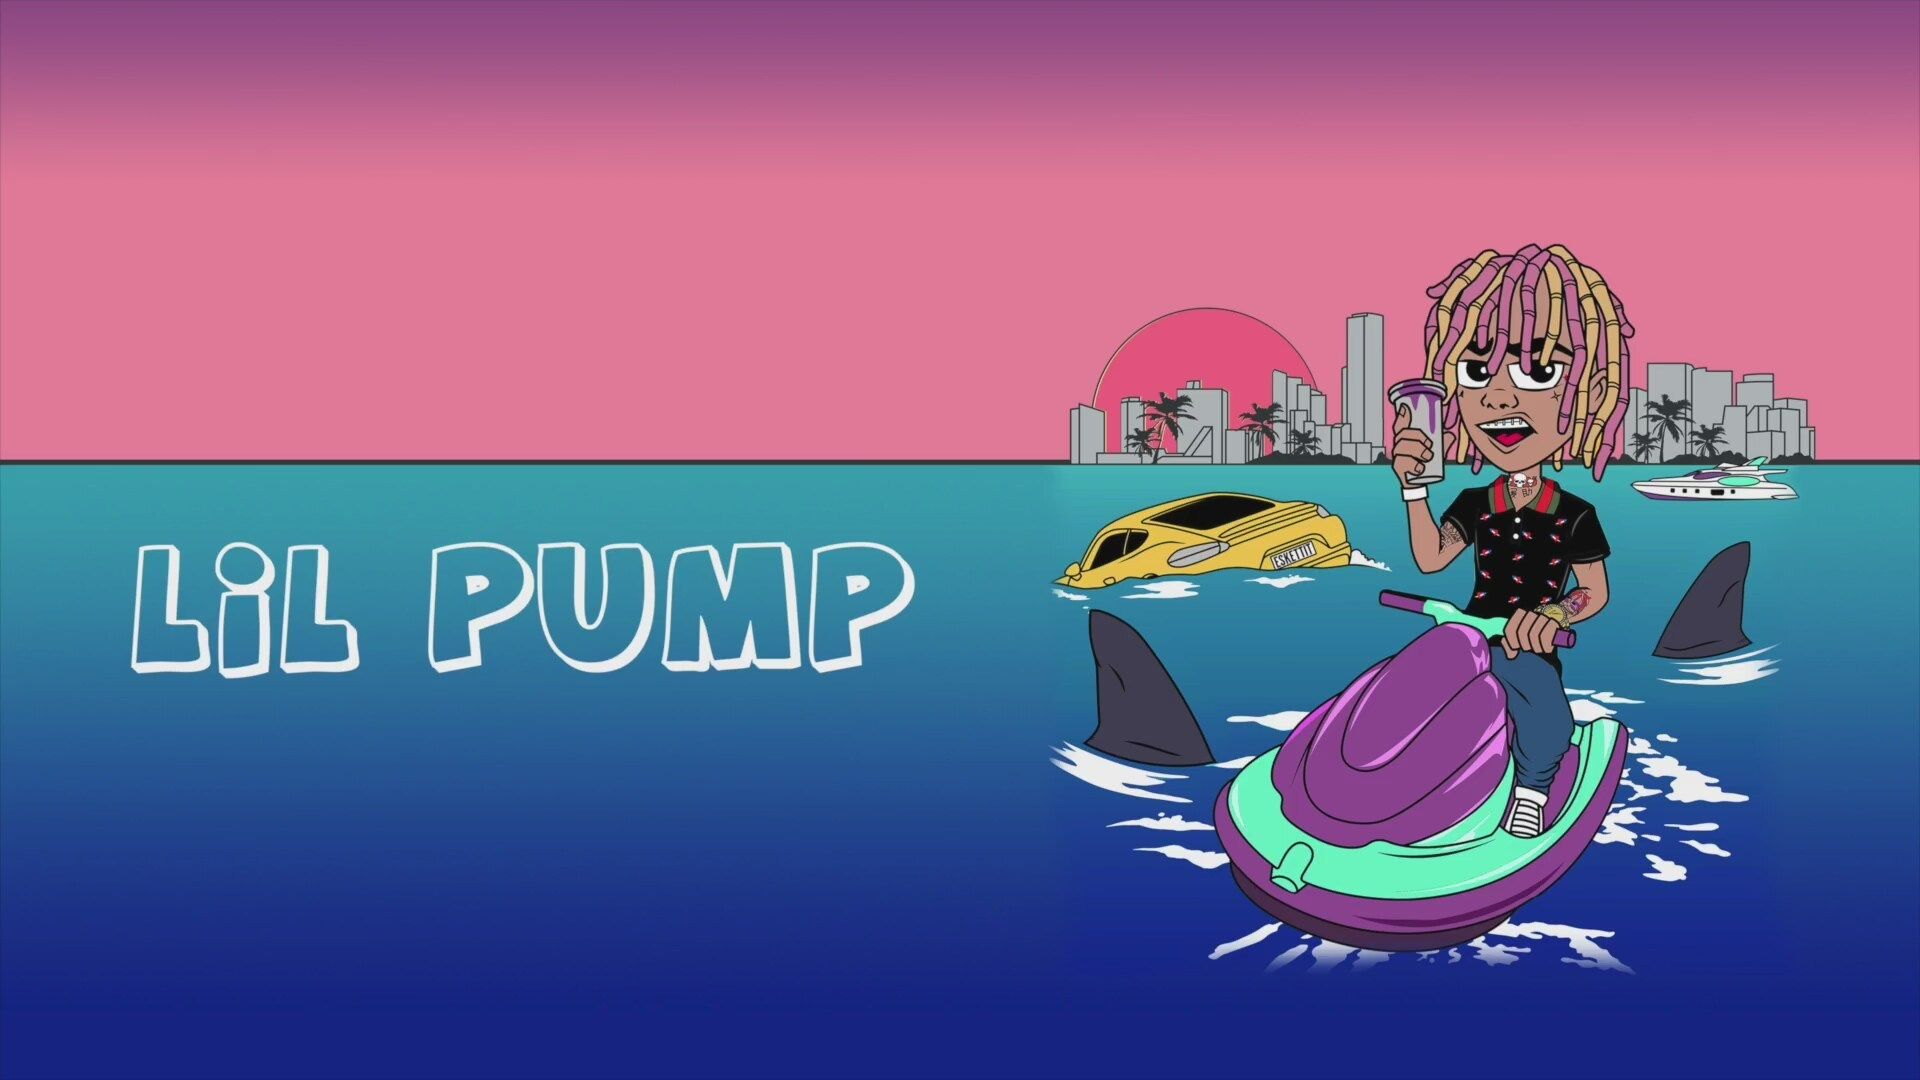 Lil Pump Cartoon Wallpapers   Top Lil Pump Cartoon 1920x1080